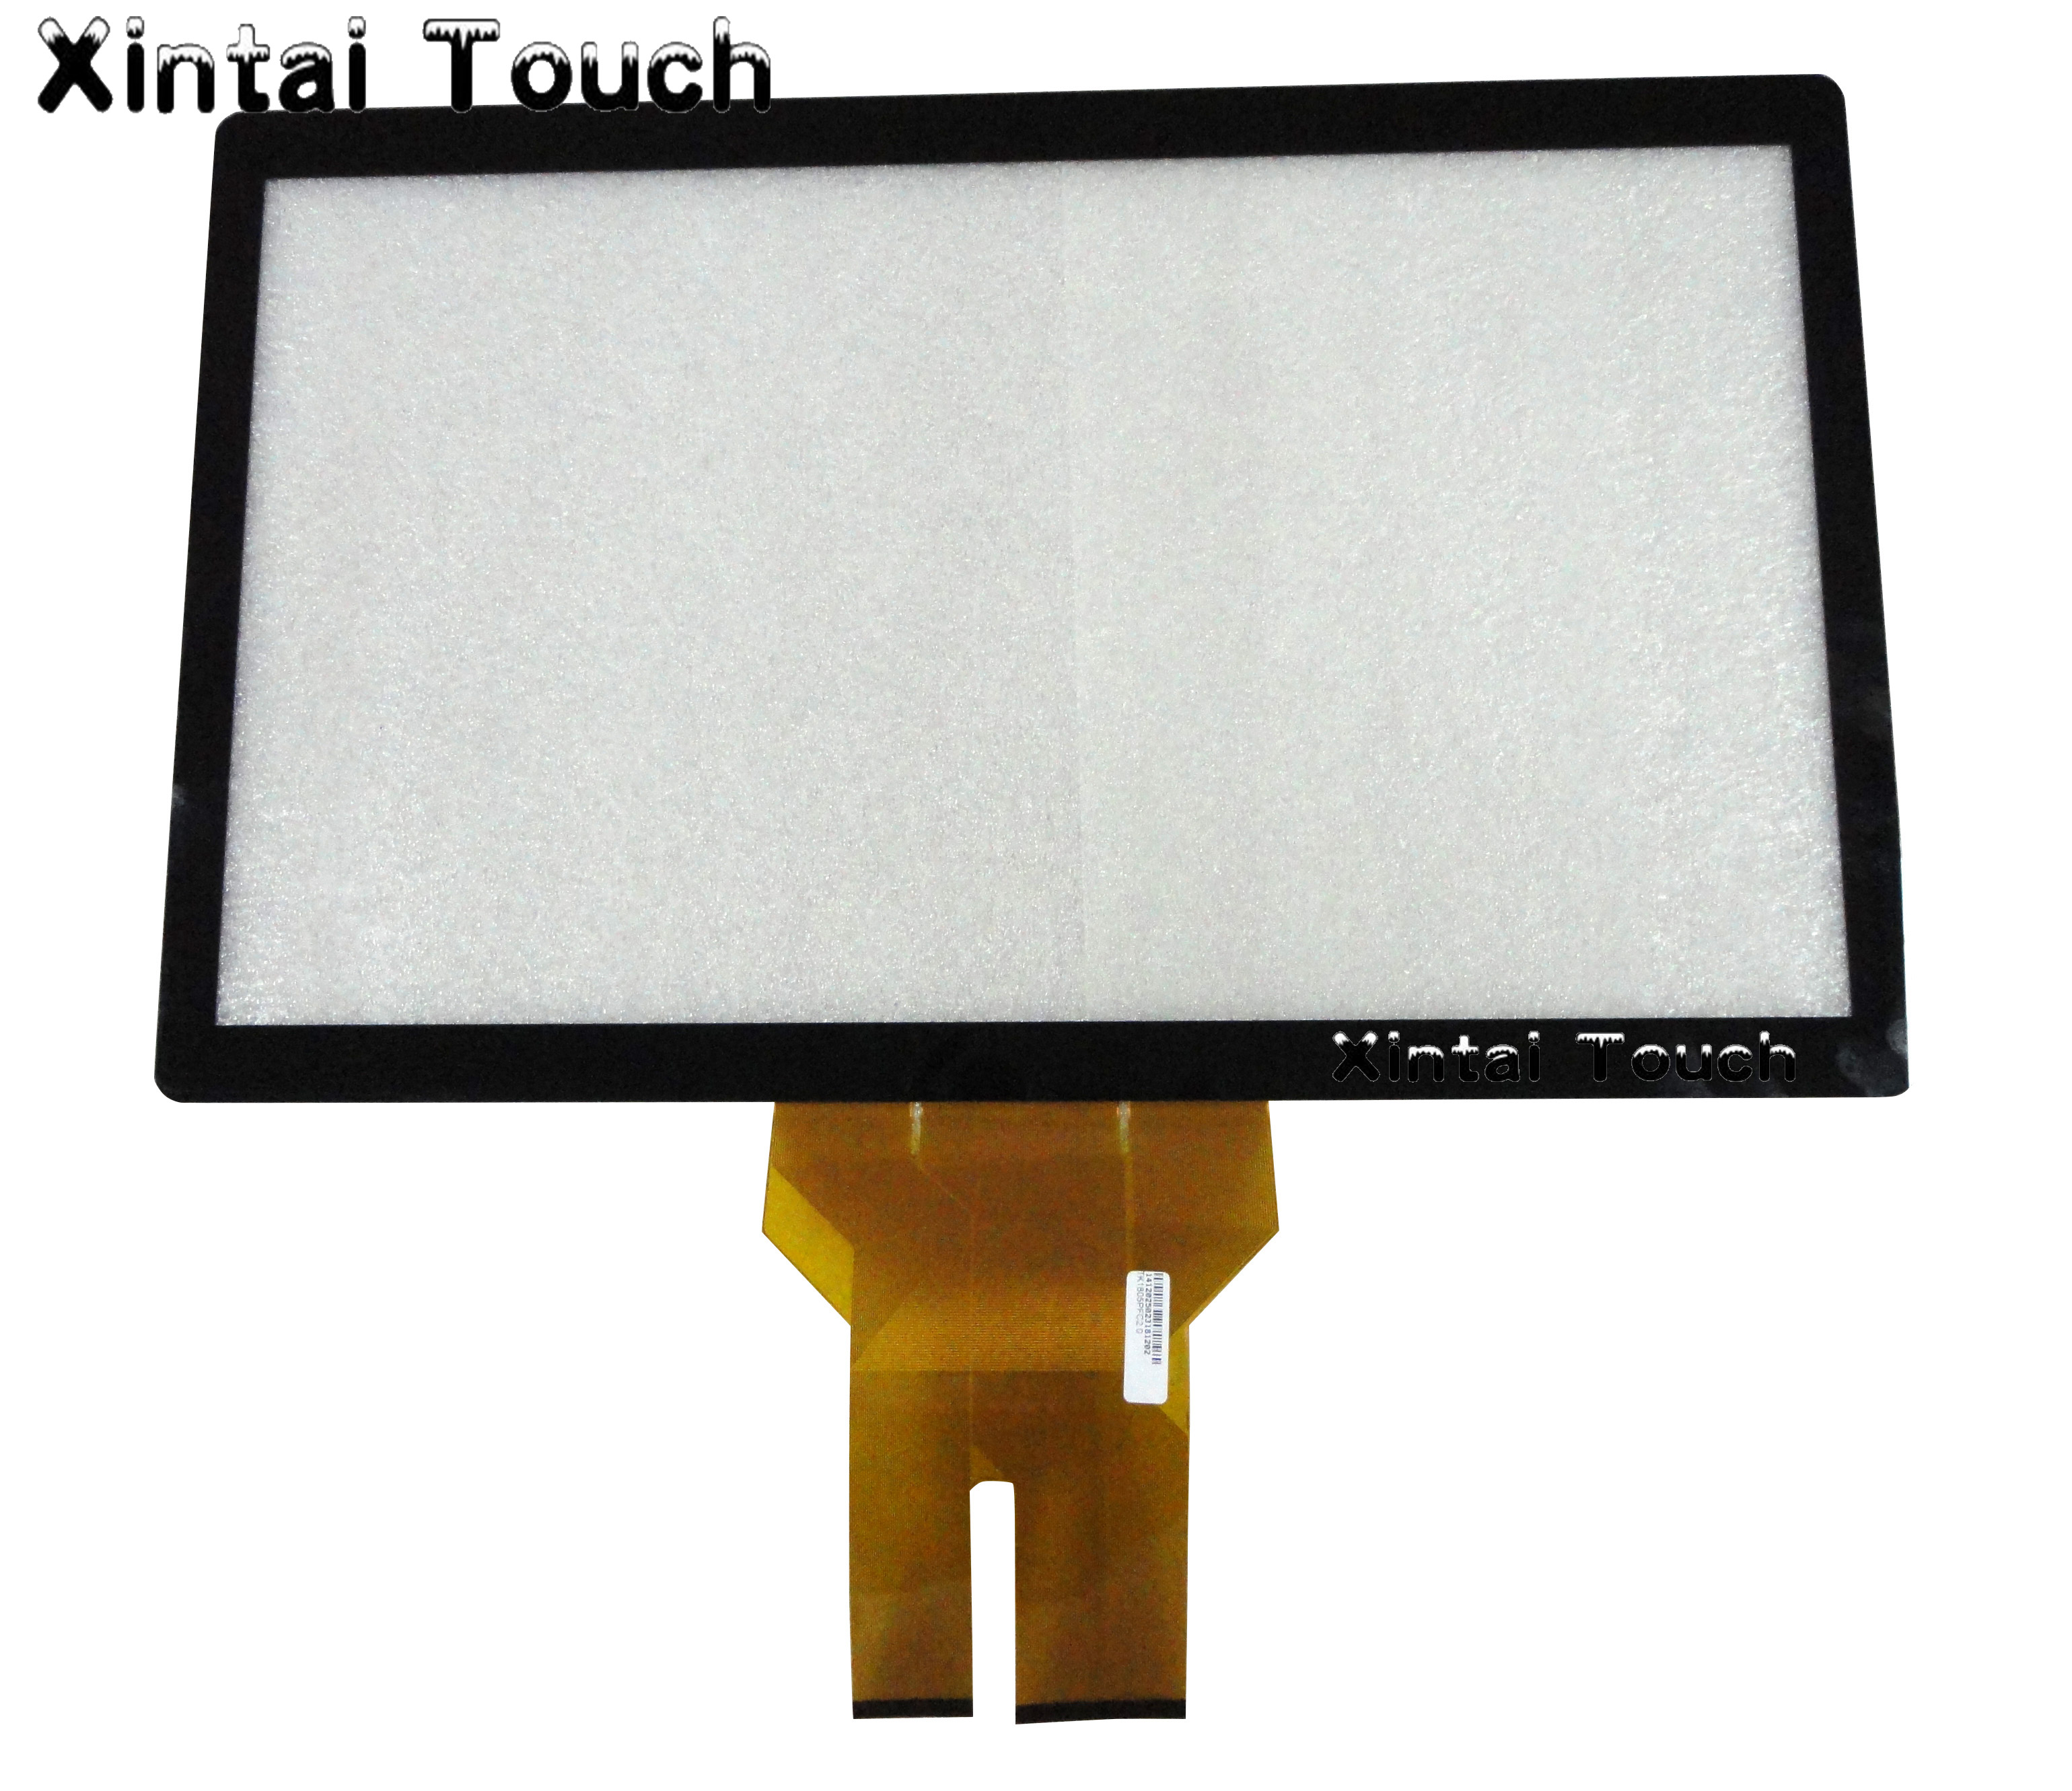 Fast Shipping! 18.5 inch 10 points cheap projected capacitive touch screen panel/kit/overlay, driver free, plug and play nrx0100 0701r touch panel fast shipping